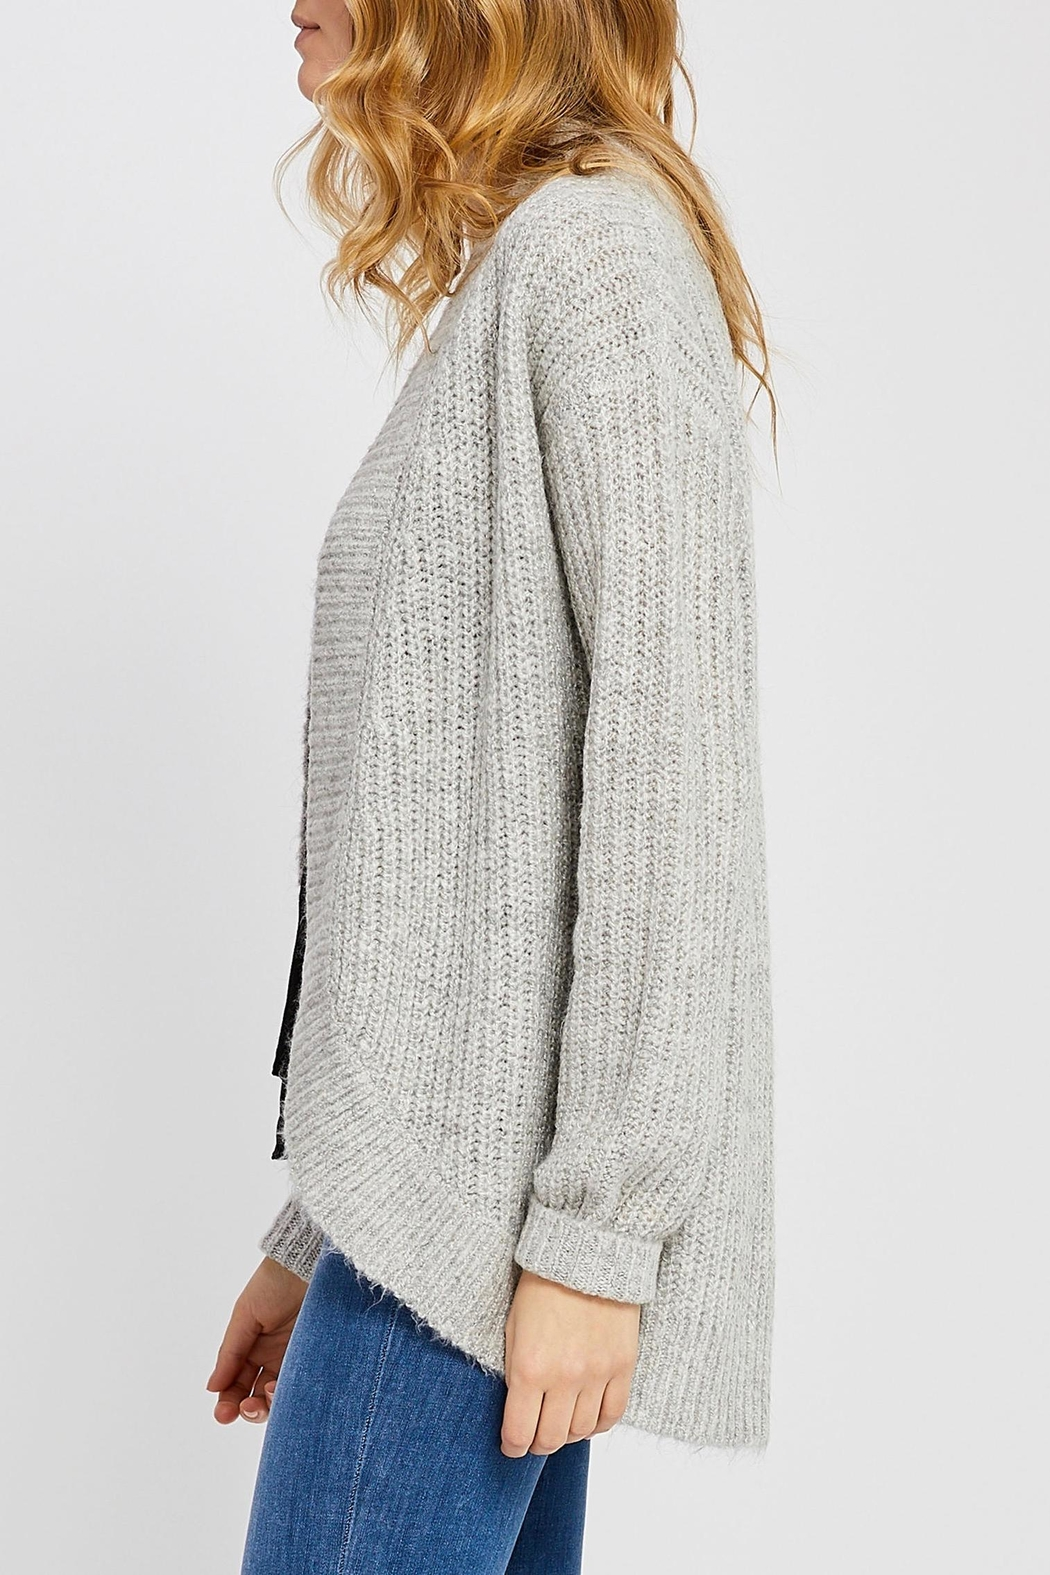 Gentle Fawn Cuffed Cocoon Cardigan - Front Full Image